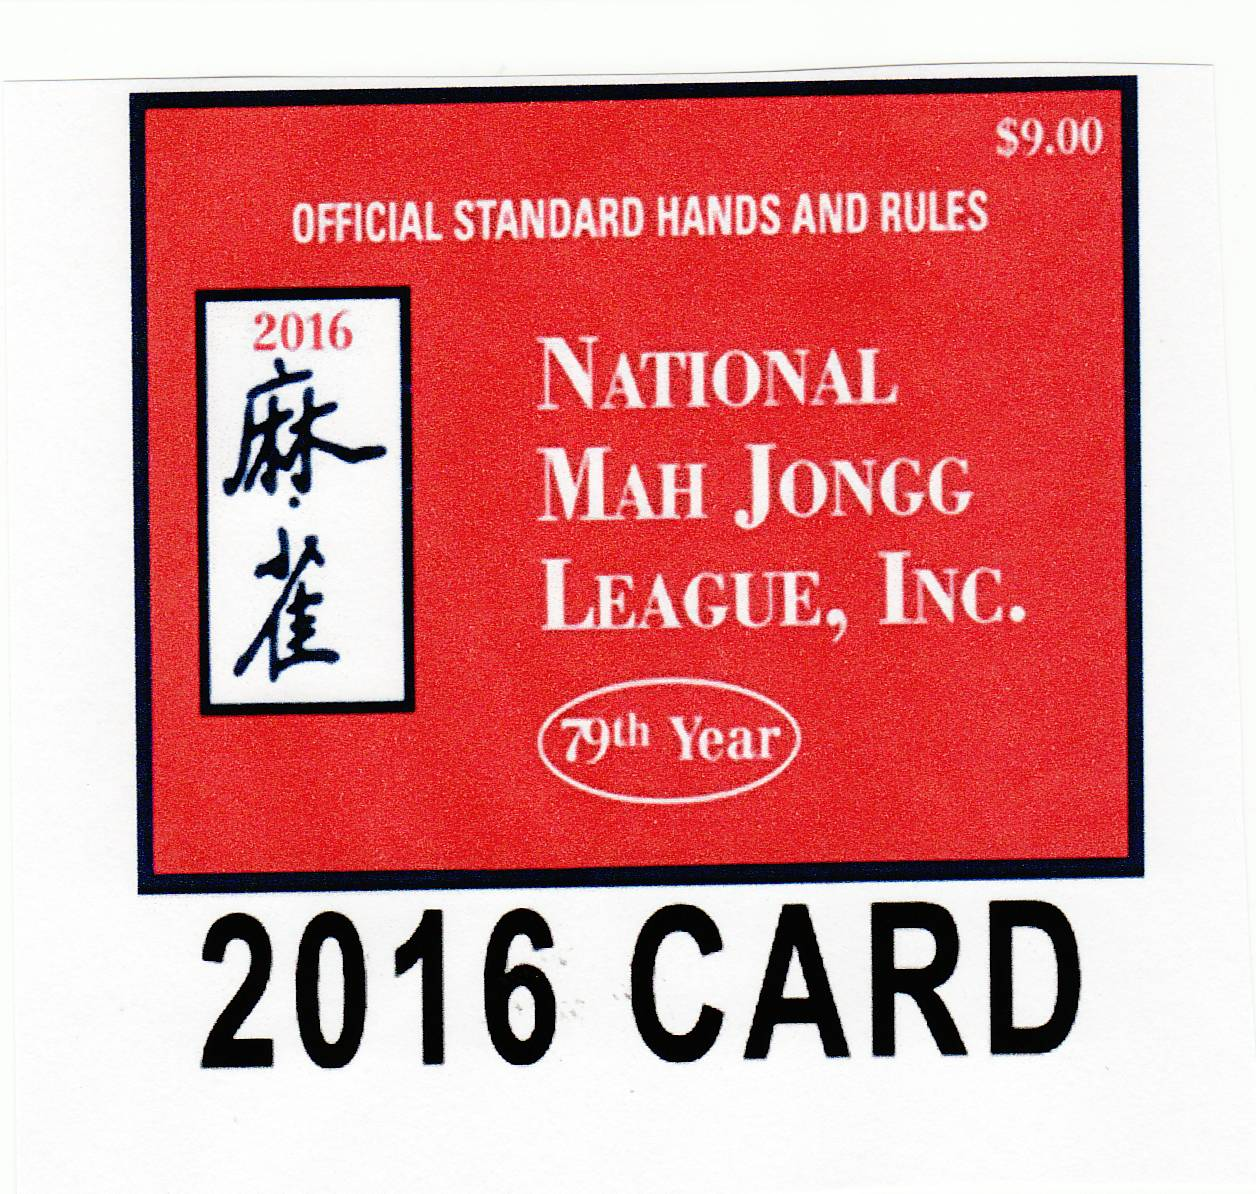 image relating to Mahjong Card Printable identify 2016 Countrywide Mah Jongg League card (lg. print) - Enjoyable With